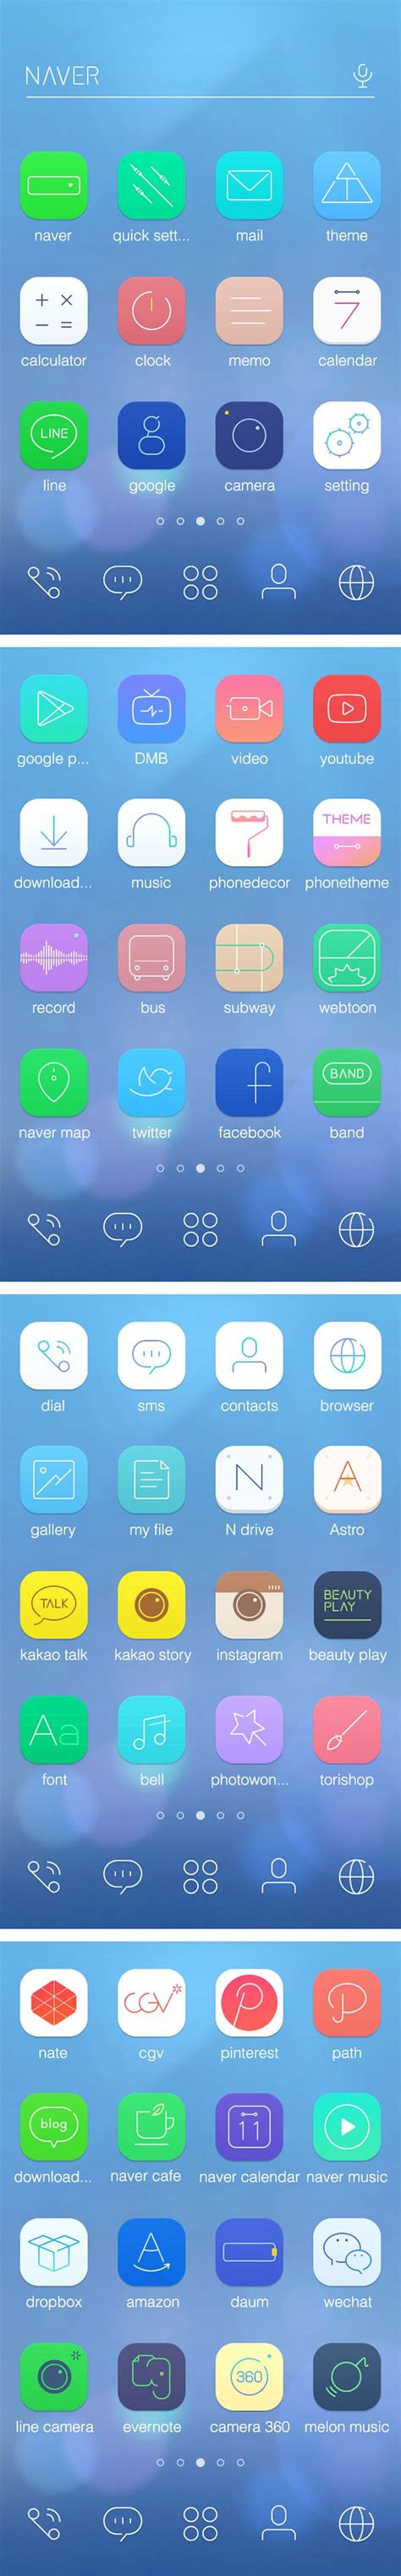 theme line android shinee 25 best ideas about app icon design on pinterest app